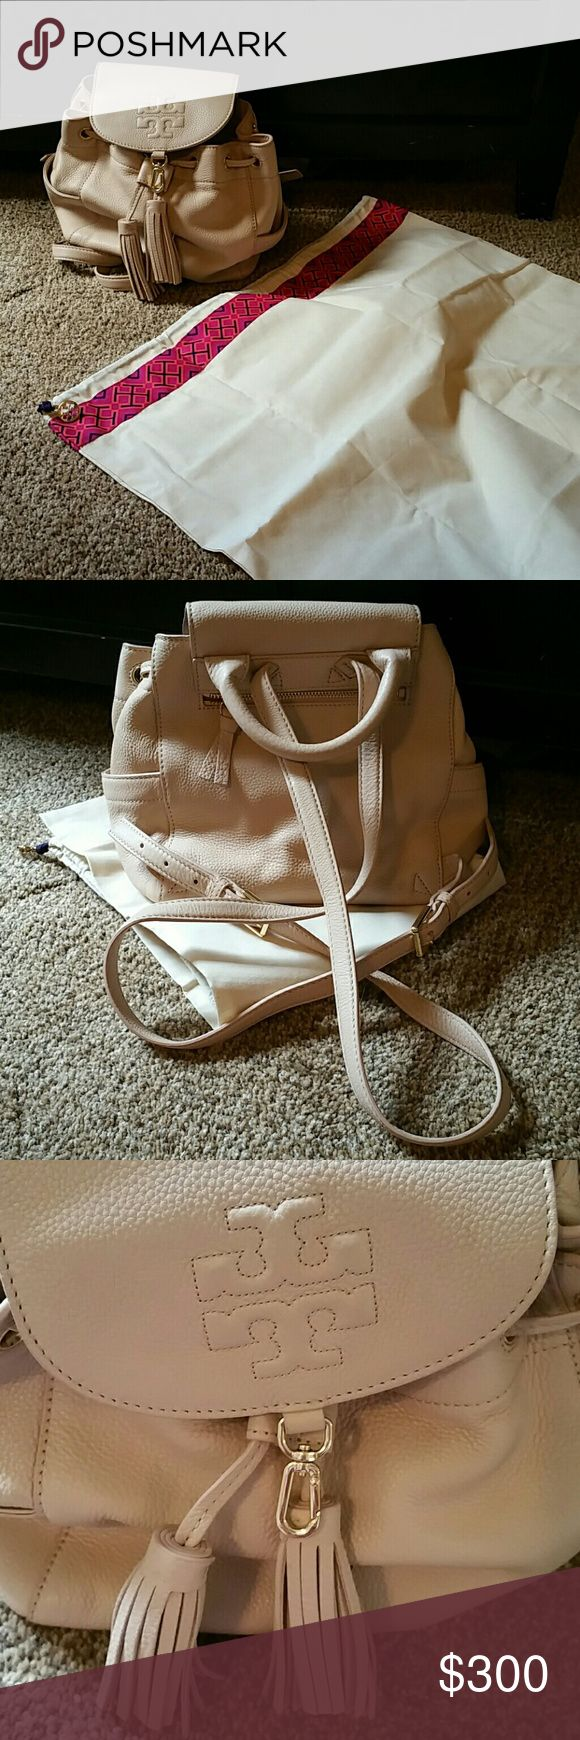 "Tory Burch neutral backpack purse 9"" ?10"", fell in love with it but needed a tad more space.....has dust bag, will send with bag. Used maybe 10 times. Purchased this year. Going to miss this one! Tory Burch Bags Backpacks"